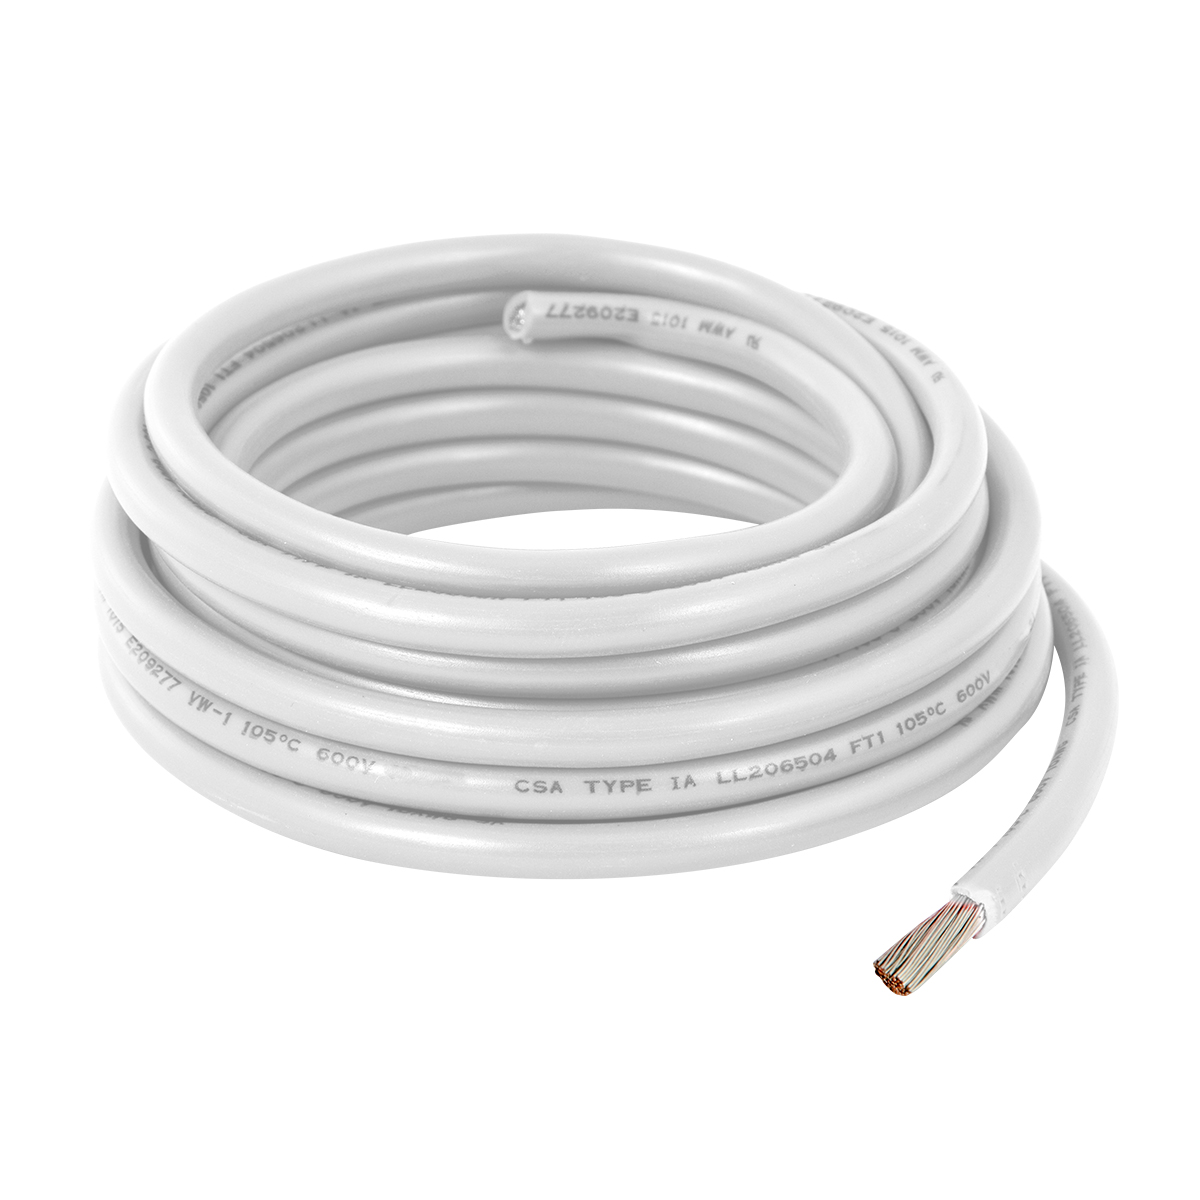 55015 White UL Listed Primary Wires in 16 Gauge